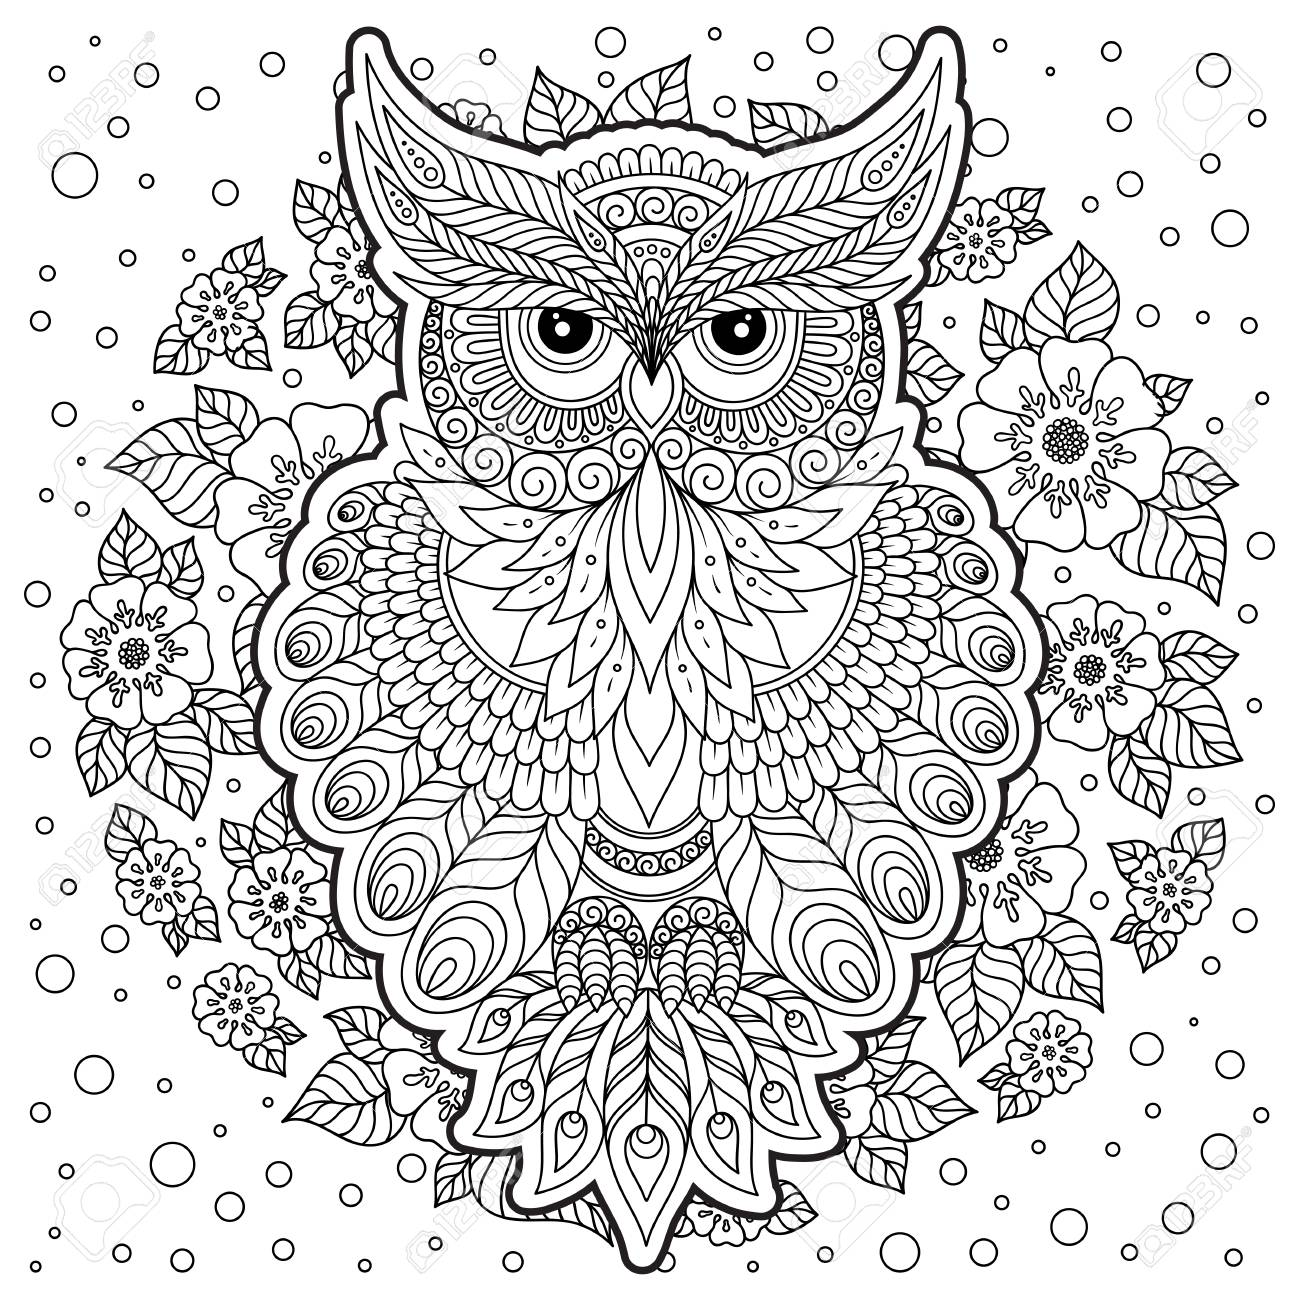 Coloring Book For Adult And Older Children. Coloring Page With Cute Owl.  Outline Drawing